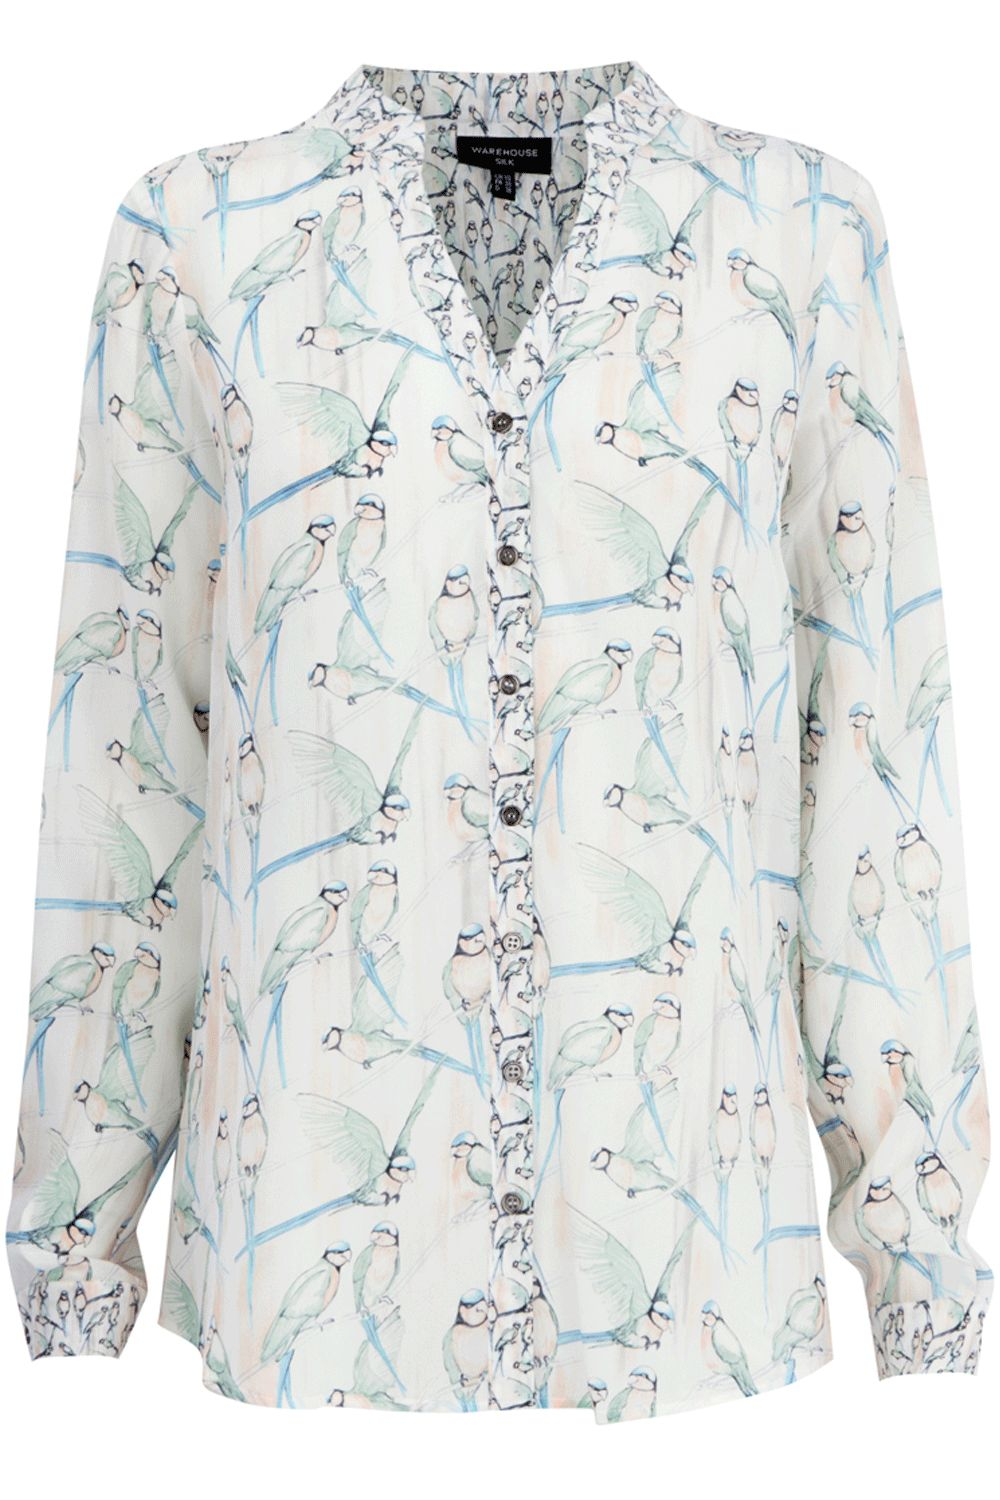 Womens Warehouse Love birds print blouse,